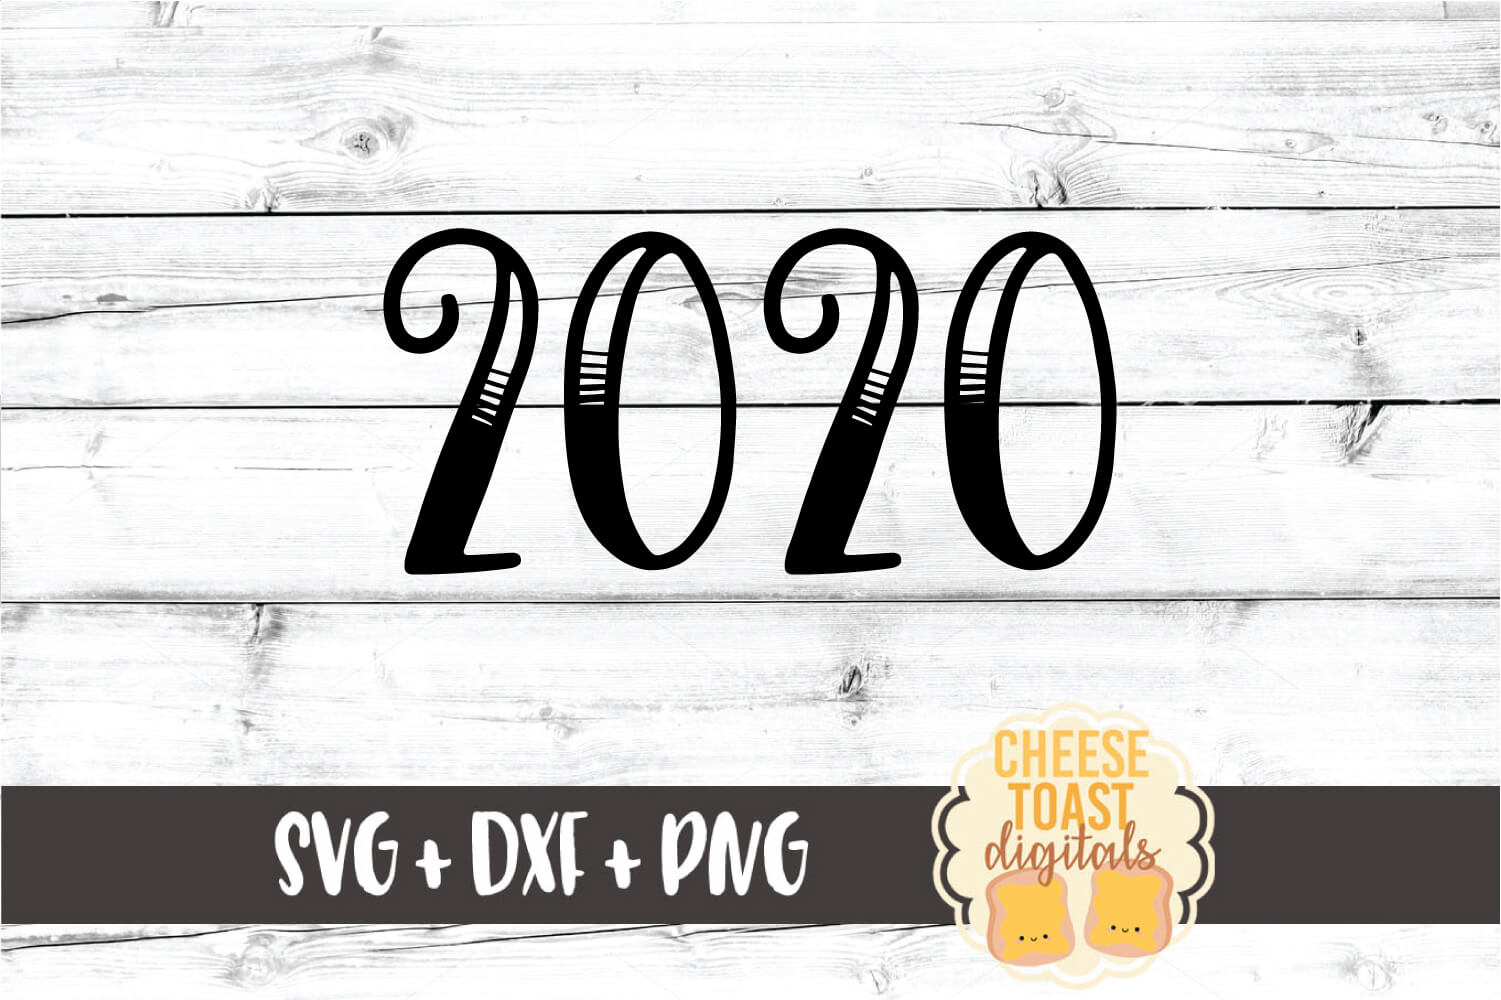 2020 - New Year SVG PNG DXF Cut Files example image 2